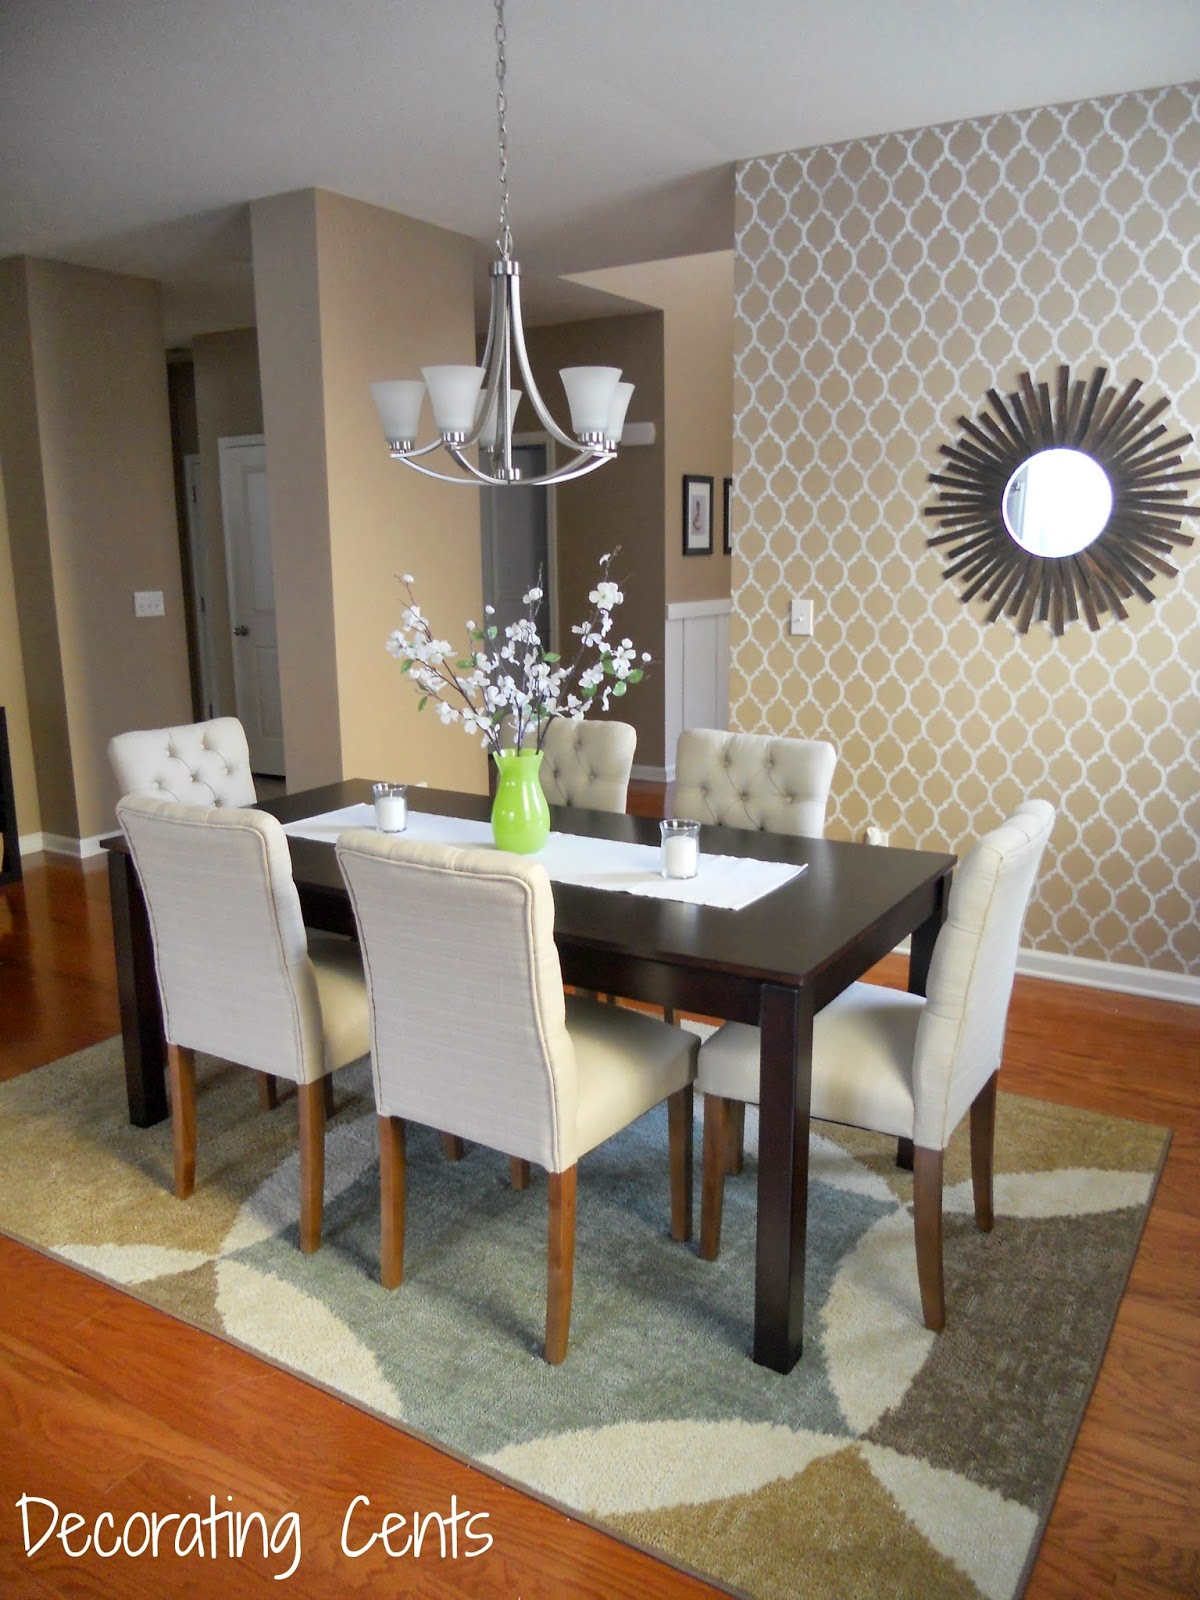 - Decorating Cents: New Dining Chairs